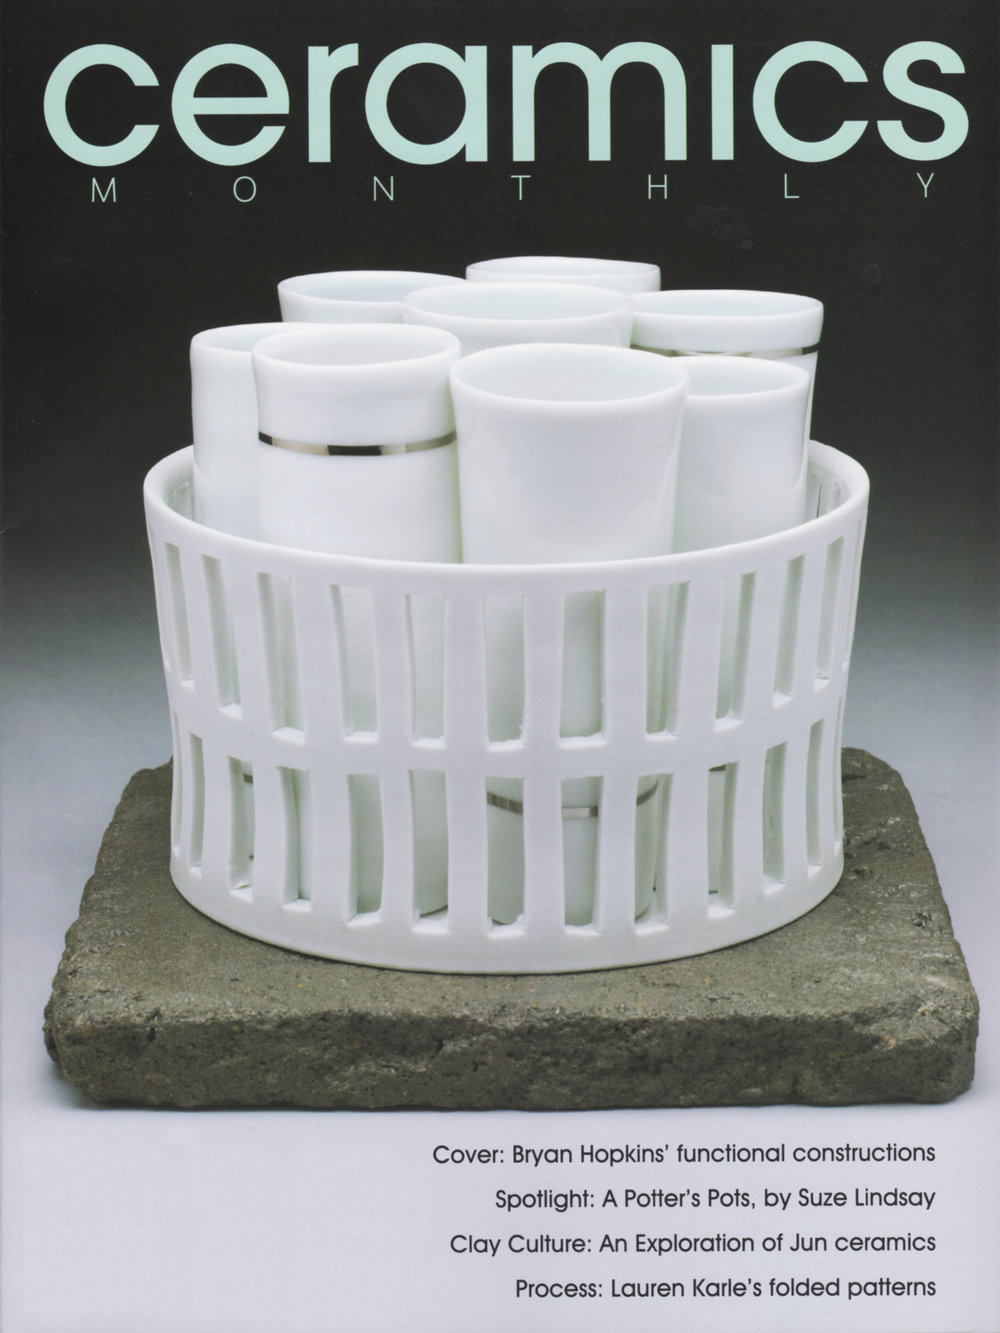 carlson_ceramics_monthly_oct2012_cover.jpg